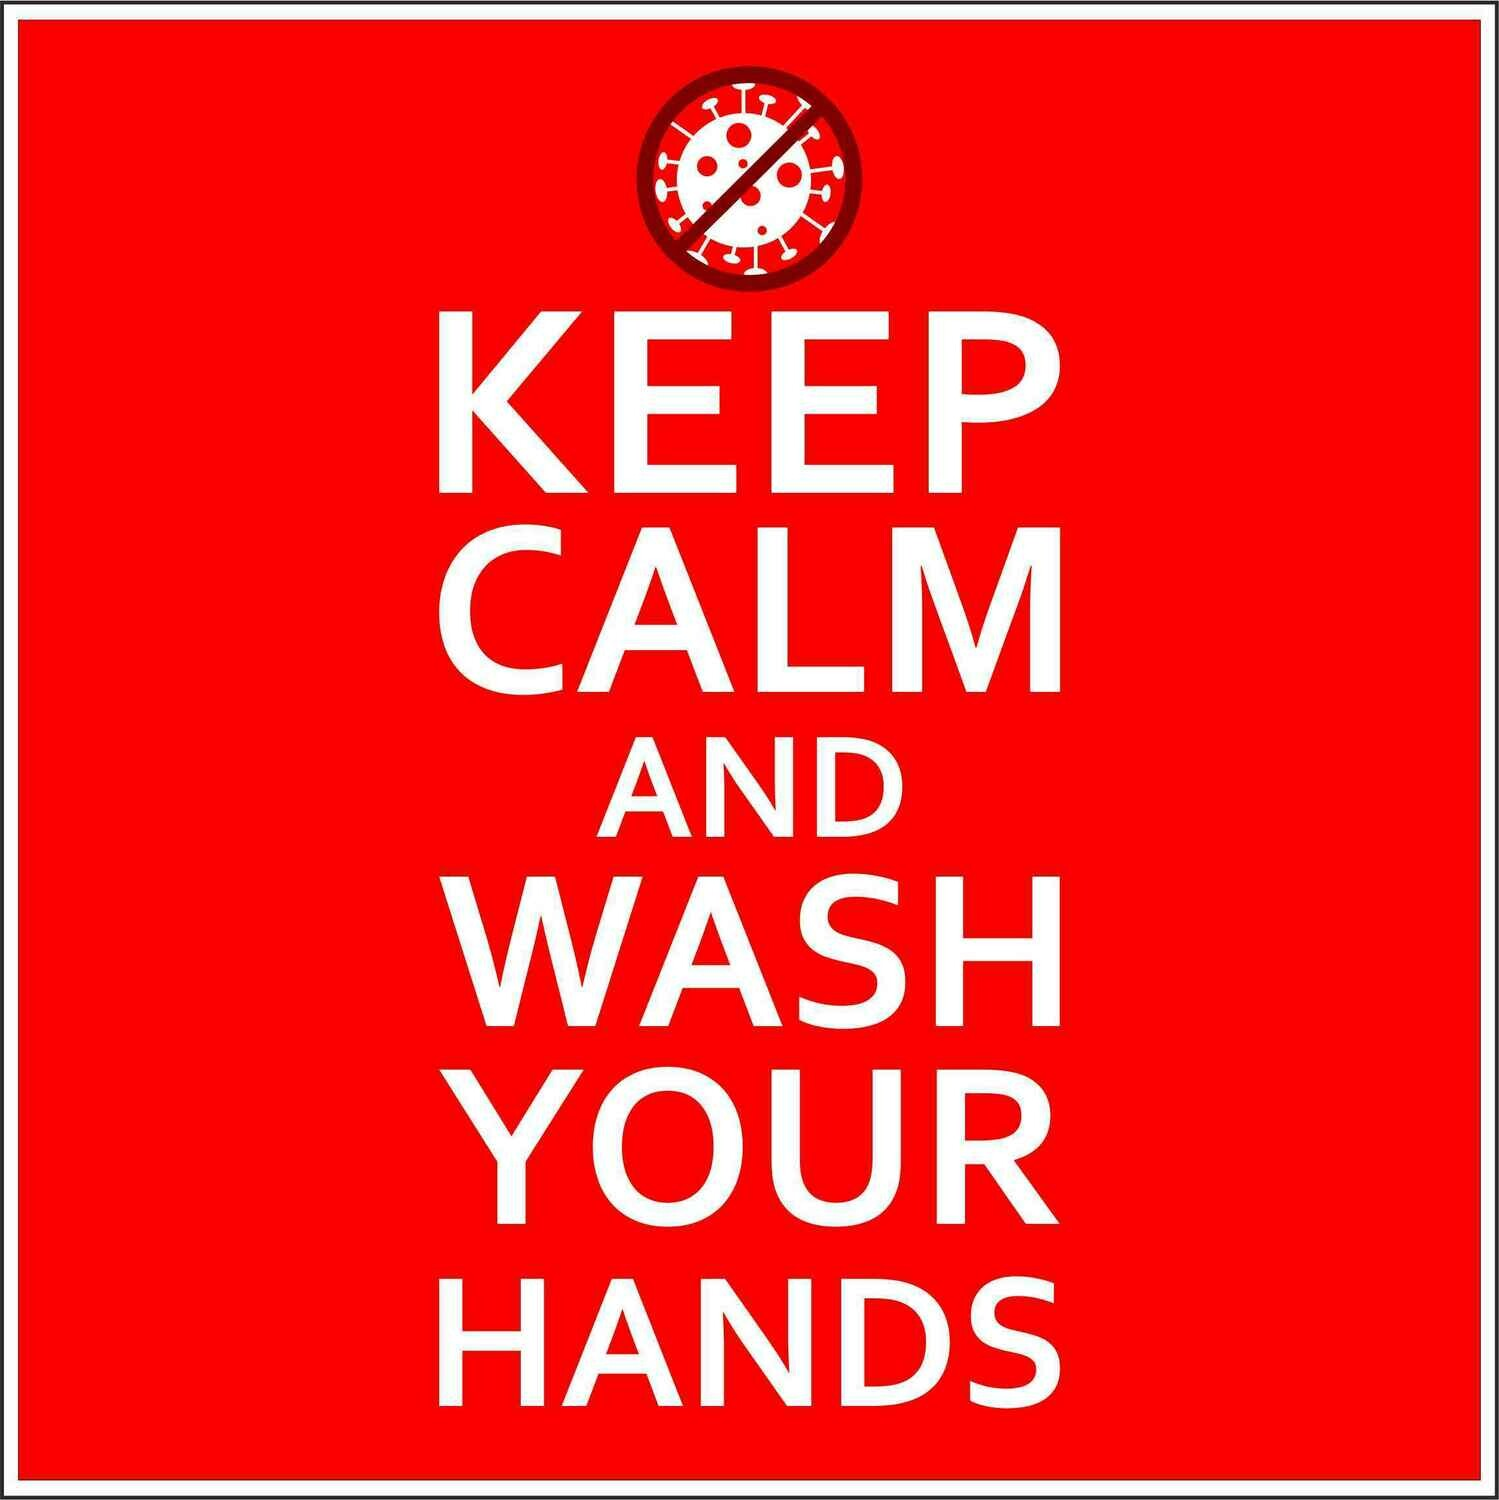 Наклейка Keep Calm Wash Hands